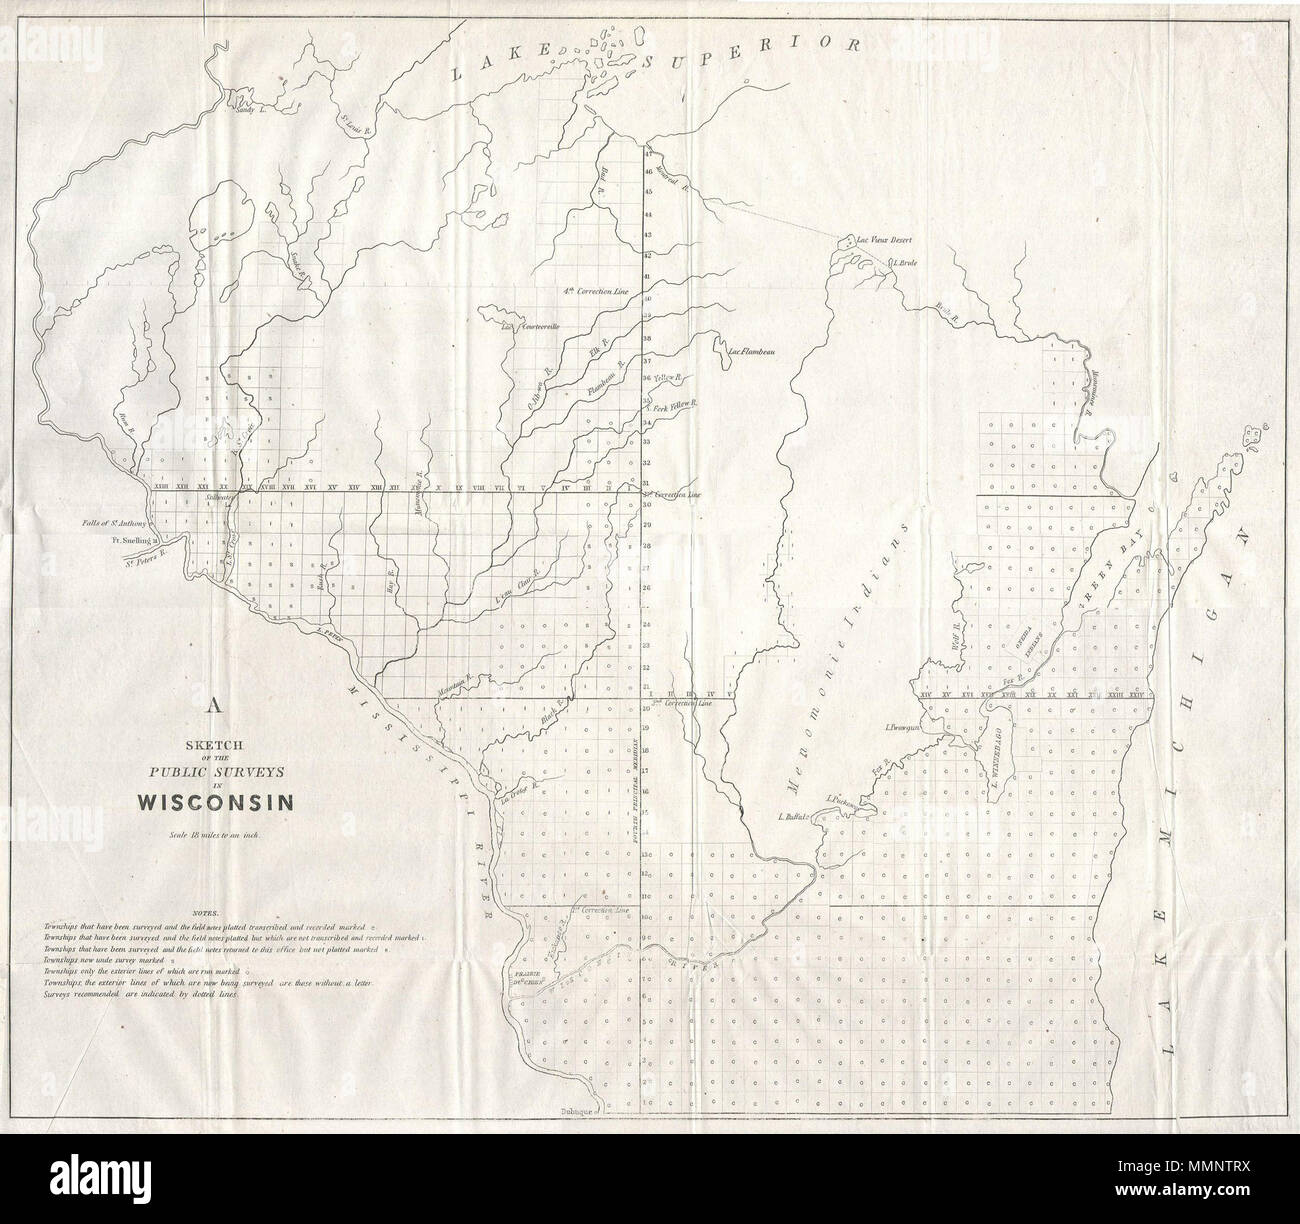 english this magnificent map of wisconsin was issued in 1848 for the us land survey office it is officially entitled a sketch of the public surveys